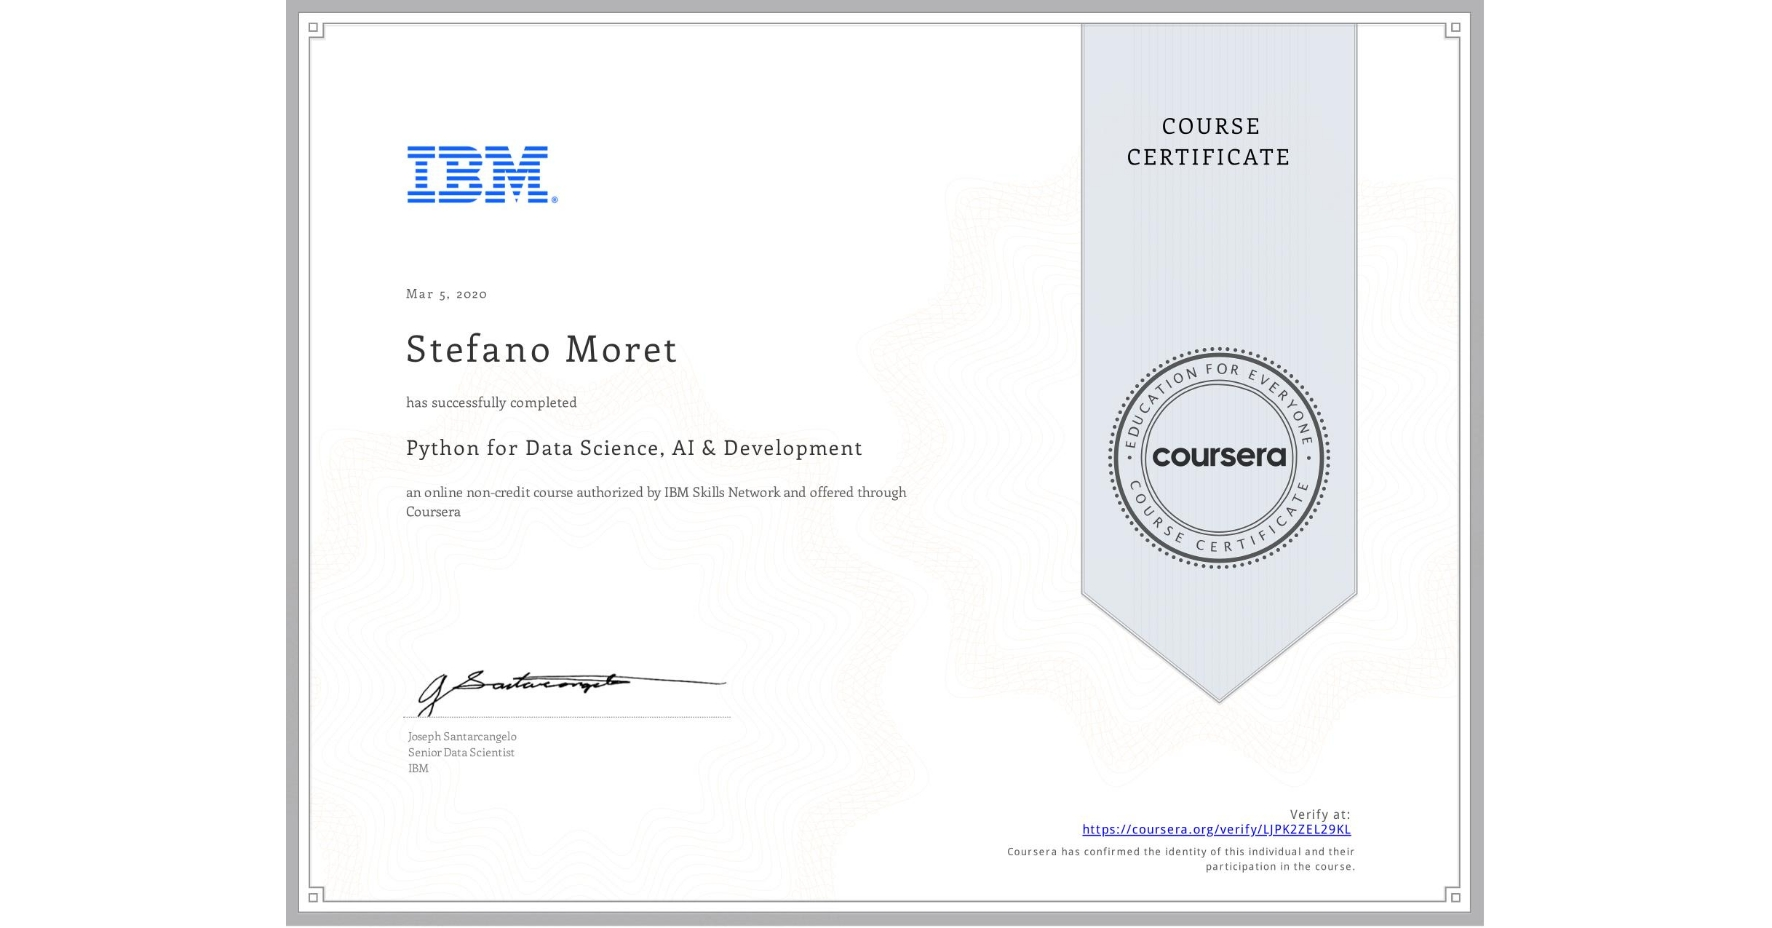 View certificate for Stefano Moret, Python for Data Science and AI, an online non-credit course authorized by IBM and offered through Coursera